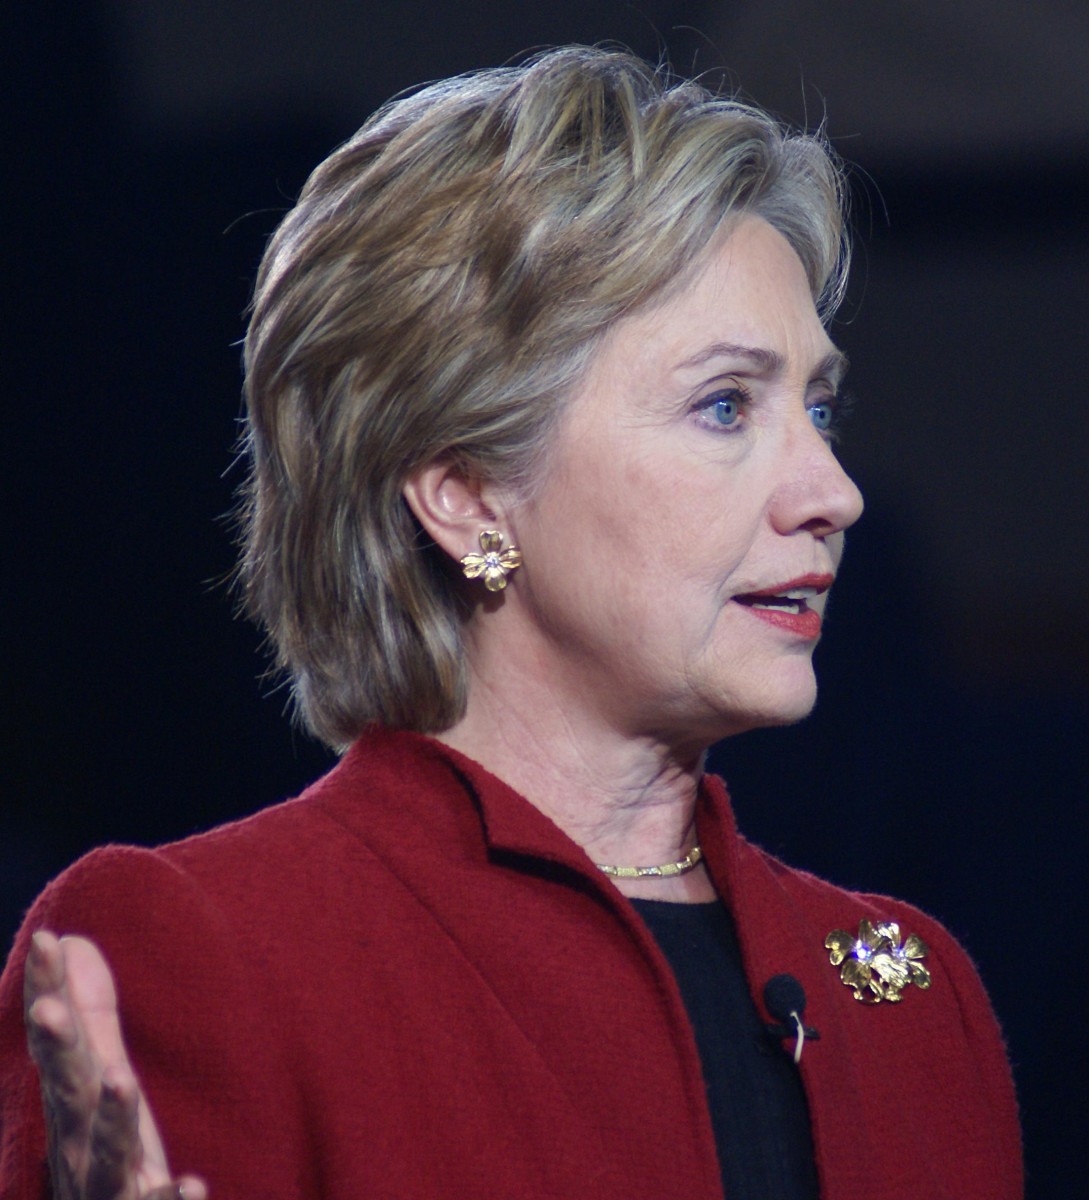 Will Hillary Clinton finally reveal the truth about the UFO issue?